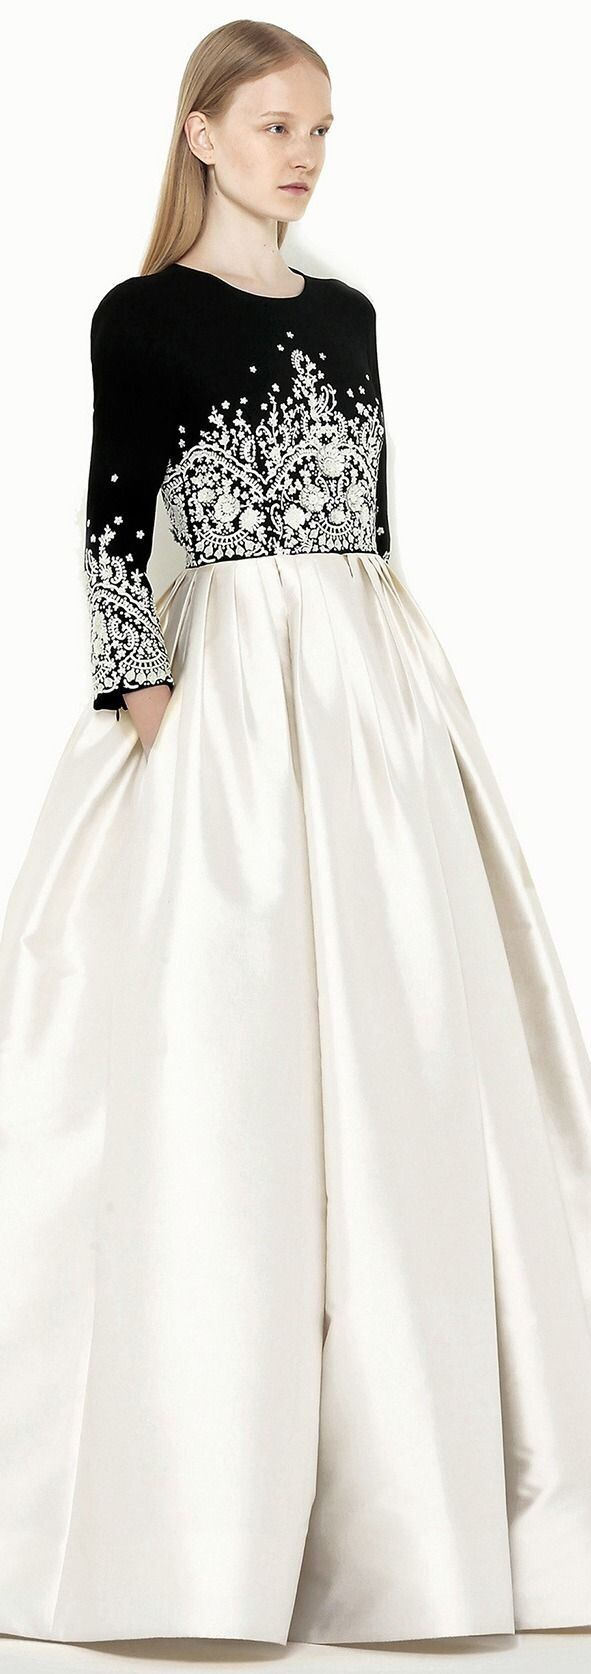 Andrew Gn ~ Resort Elegance - White Embroidered Bodice over White w Ball Room style White Skirt, 2014